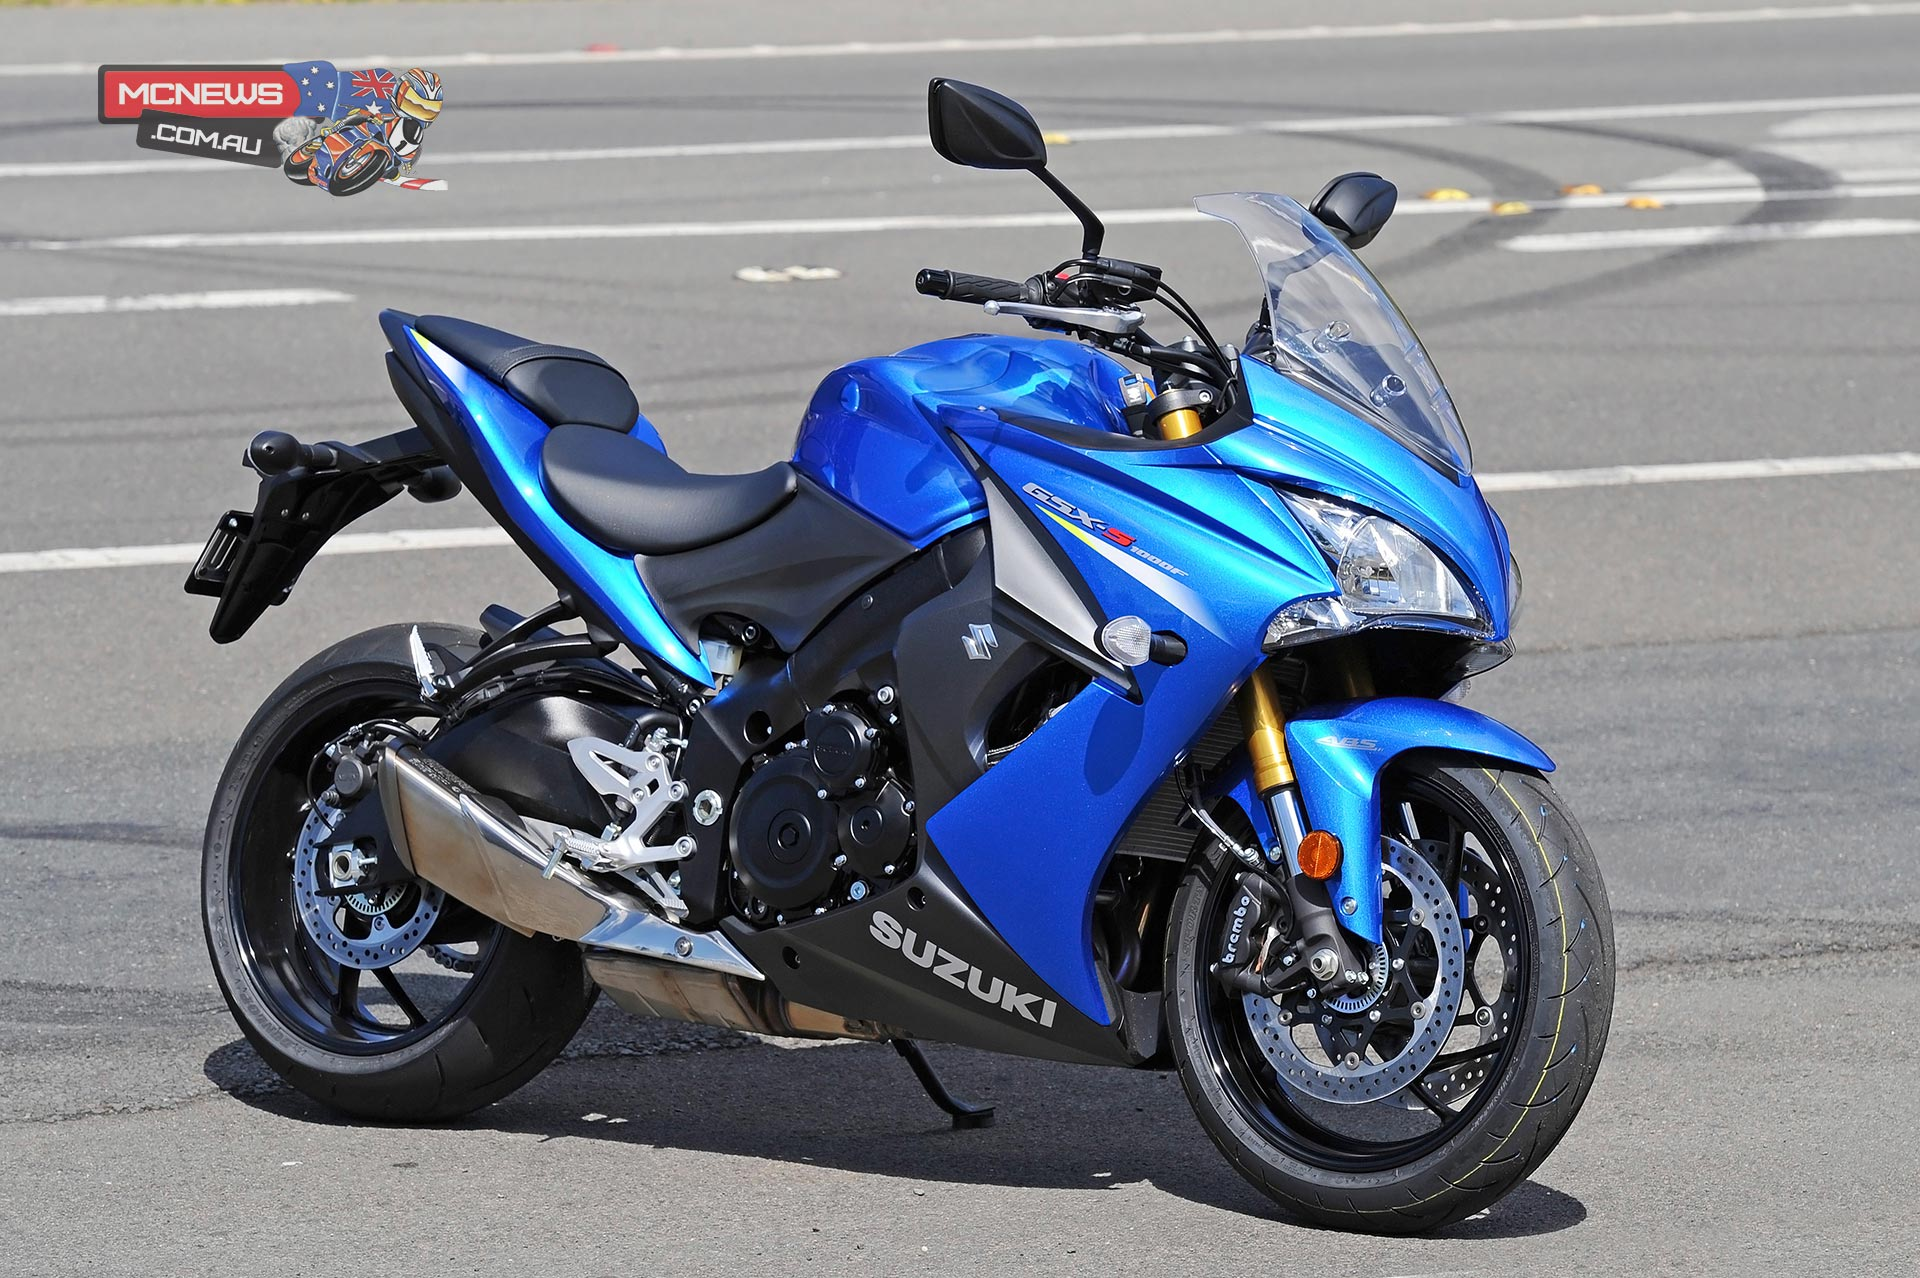 suzuki gsx s1000 gsx s1000f with boris. Black Bedroom Furniture Sets. Home Design Ideas